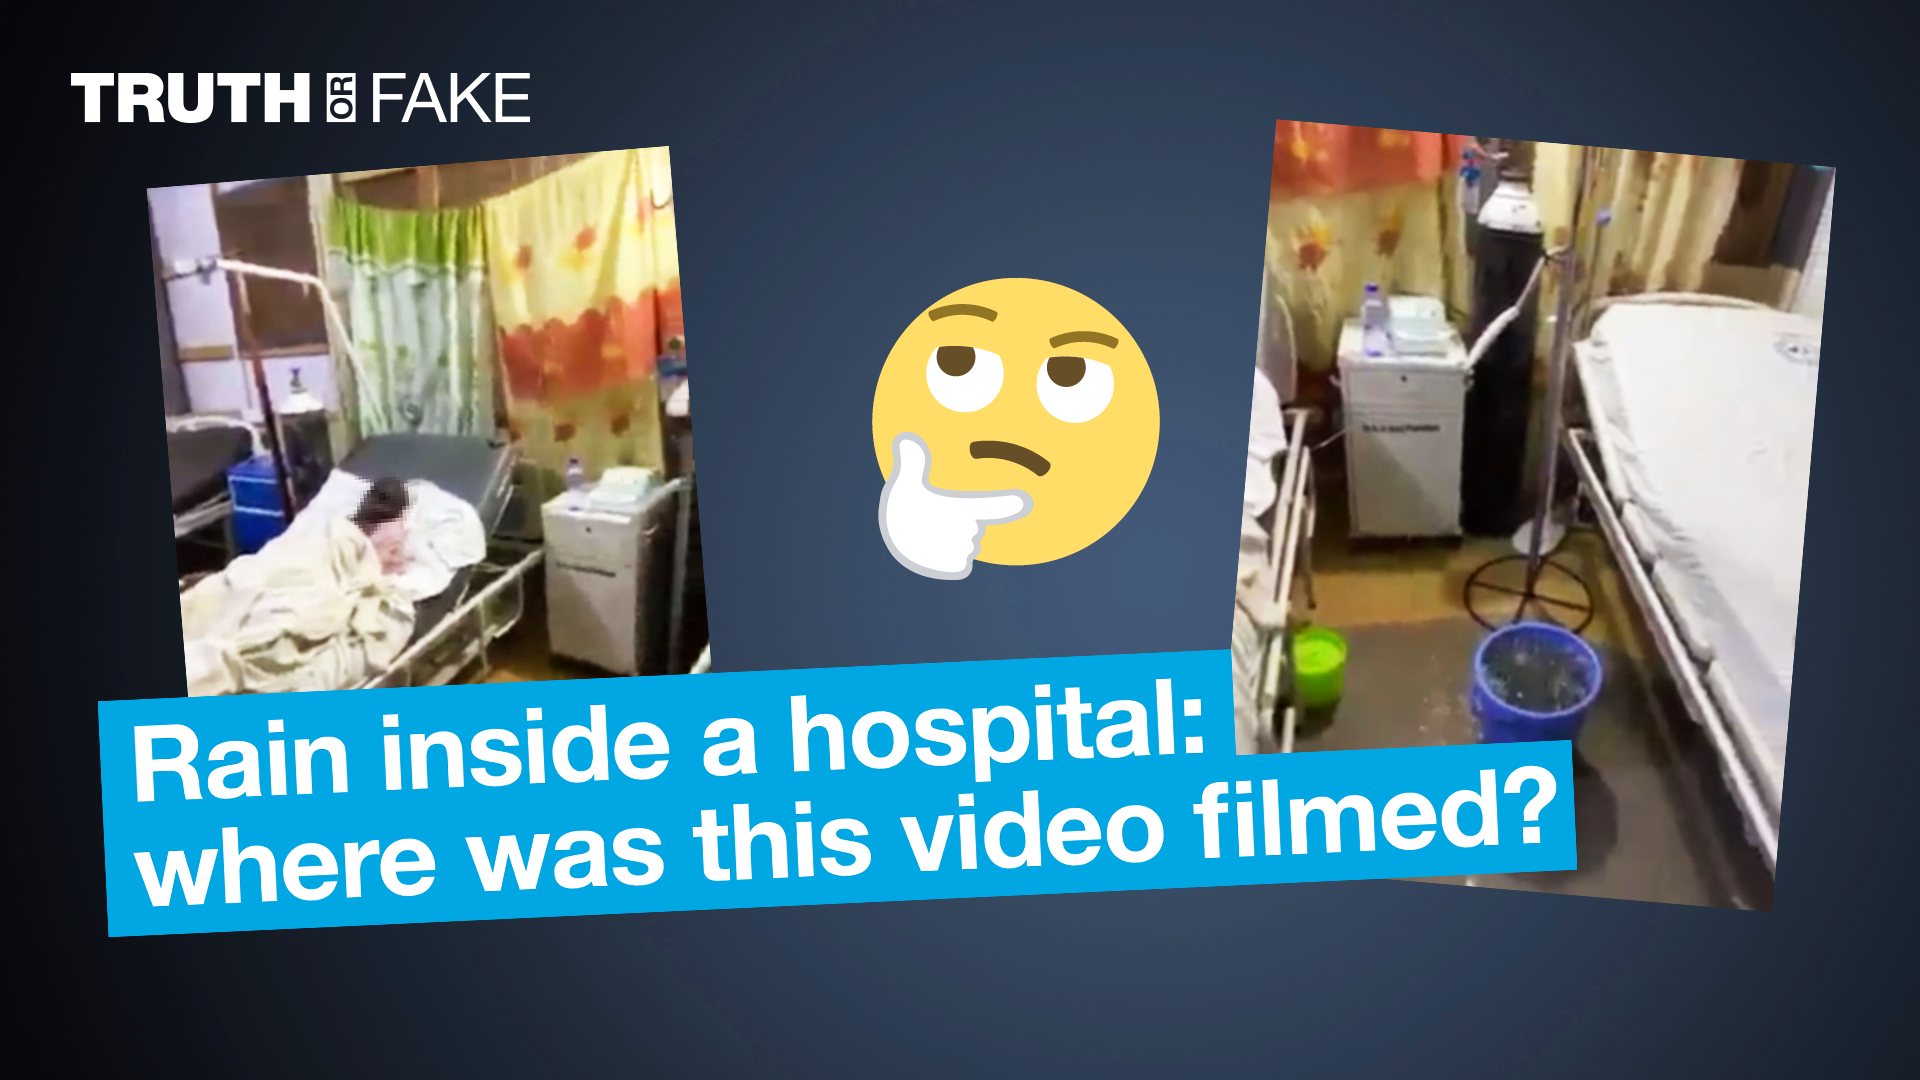 Web users say this video was filmed in the Democratic Republic of Congo, or in Cameroon. But it wasn't filmed in either of those countries.